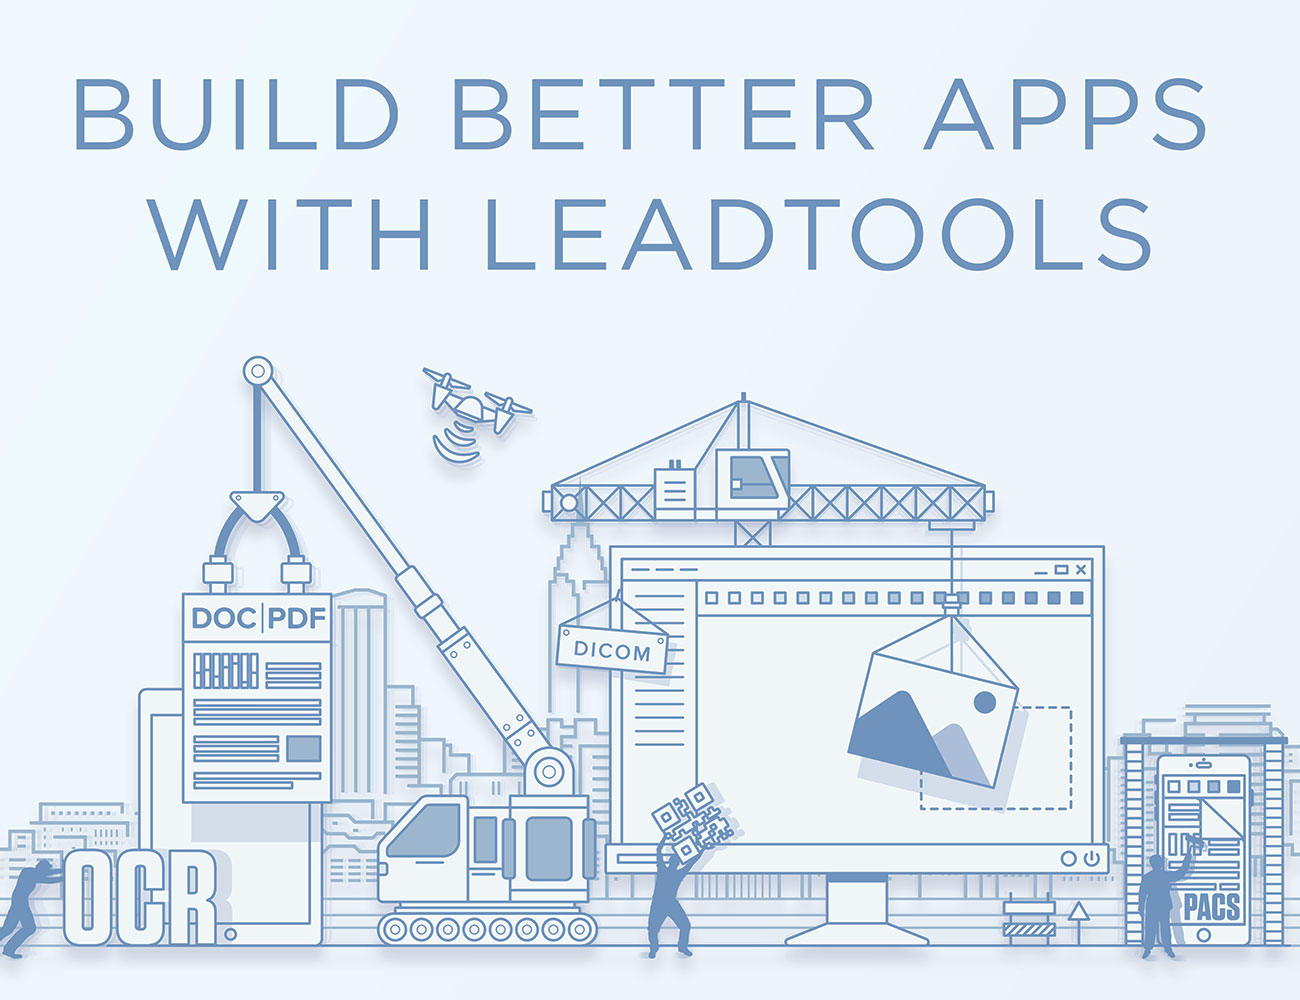 Build Better Apps with LEADTOOLS